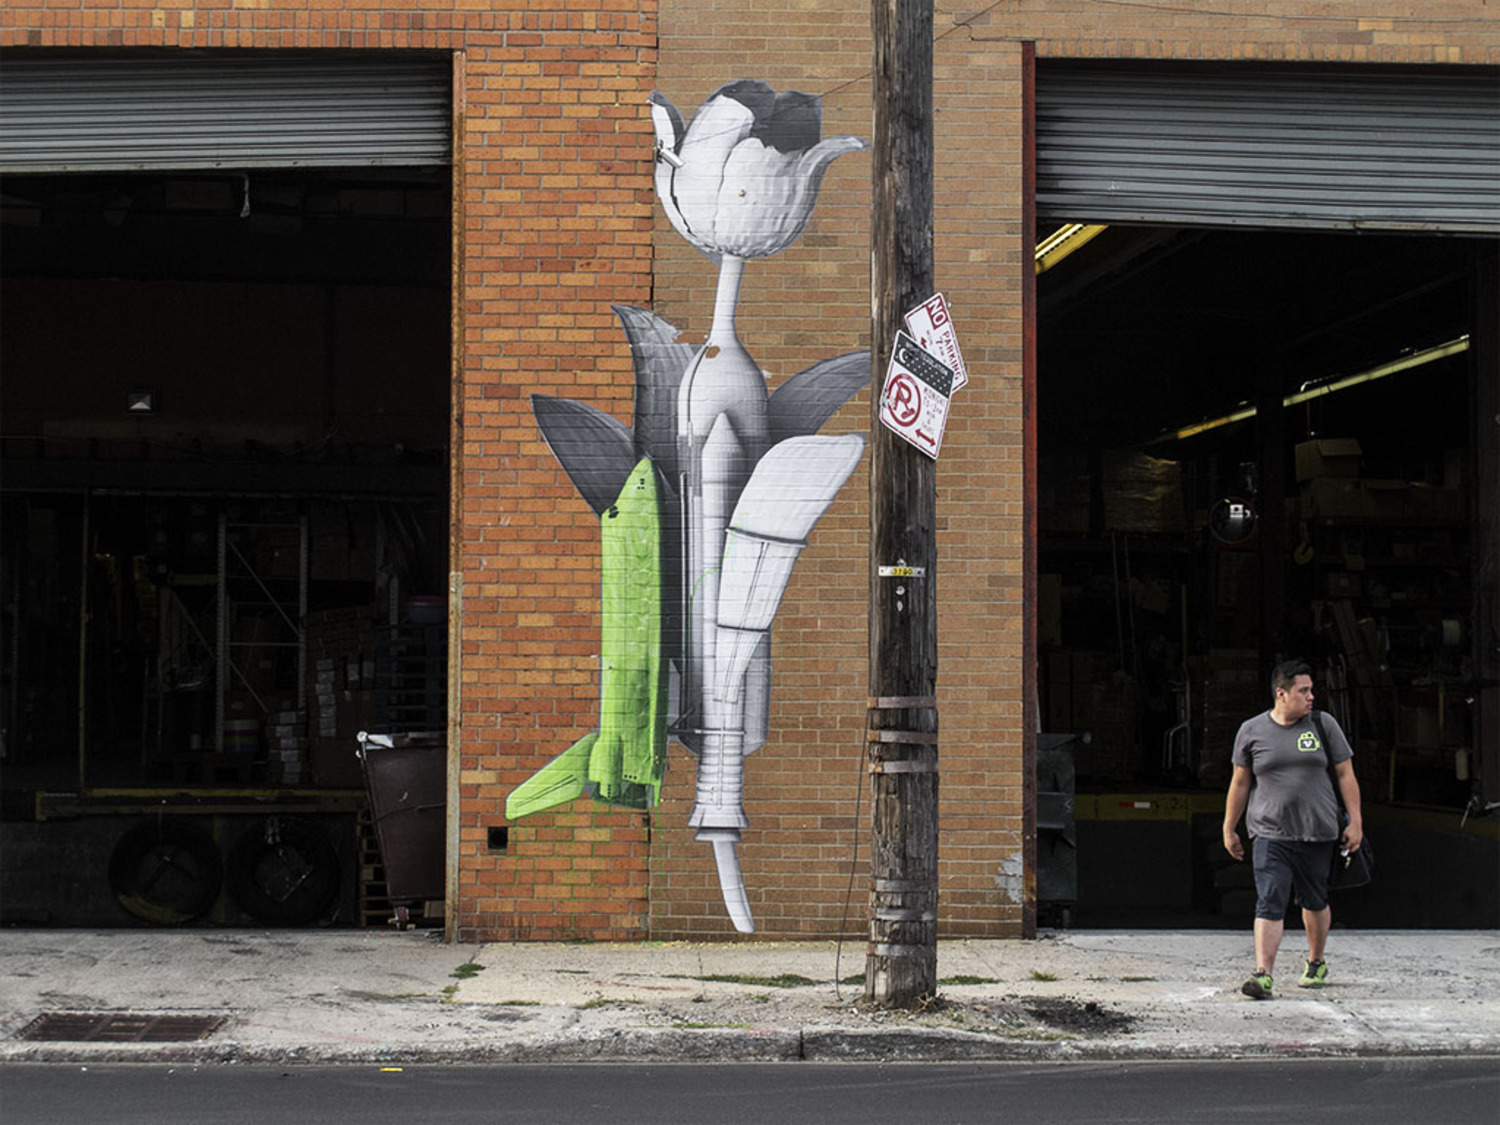 Ludo creates two brand new pieces in New York City, USA